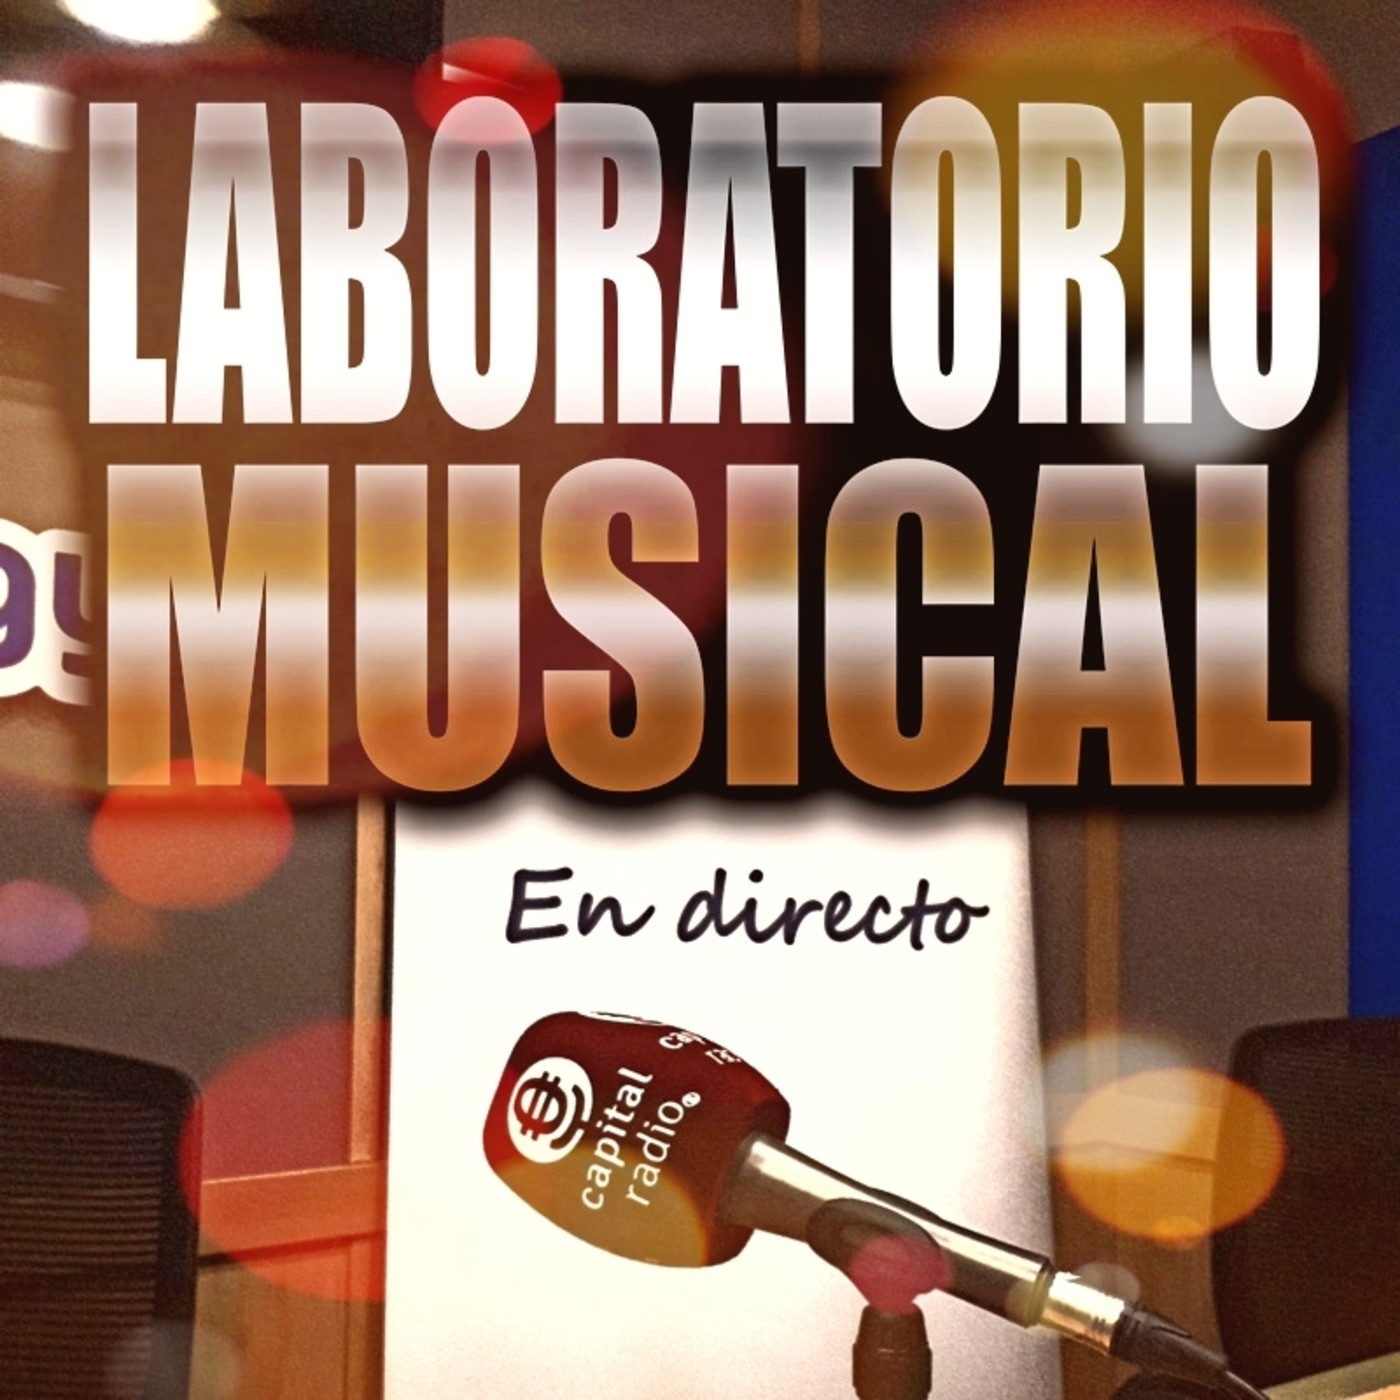 Laboratorio Musical 12.- Careless whisper